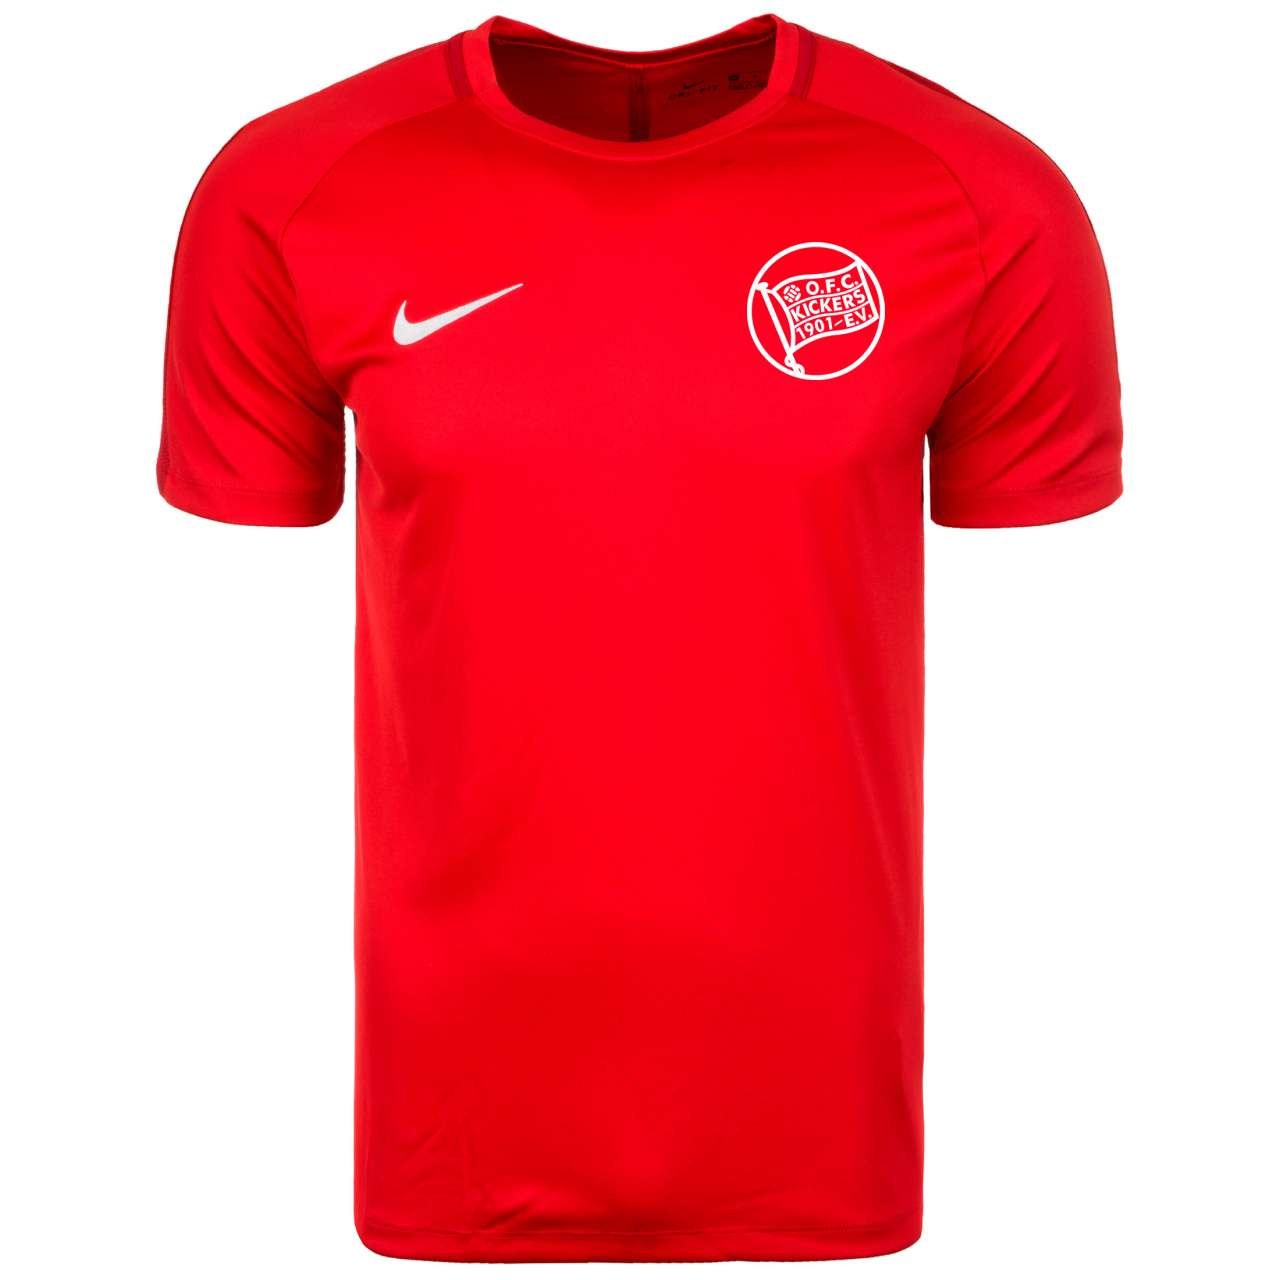 Nike Trainingsshirt 18/19